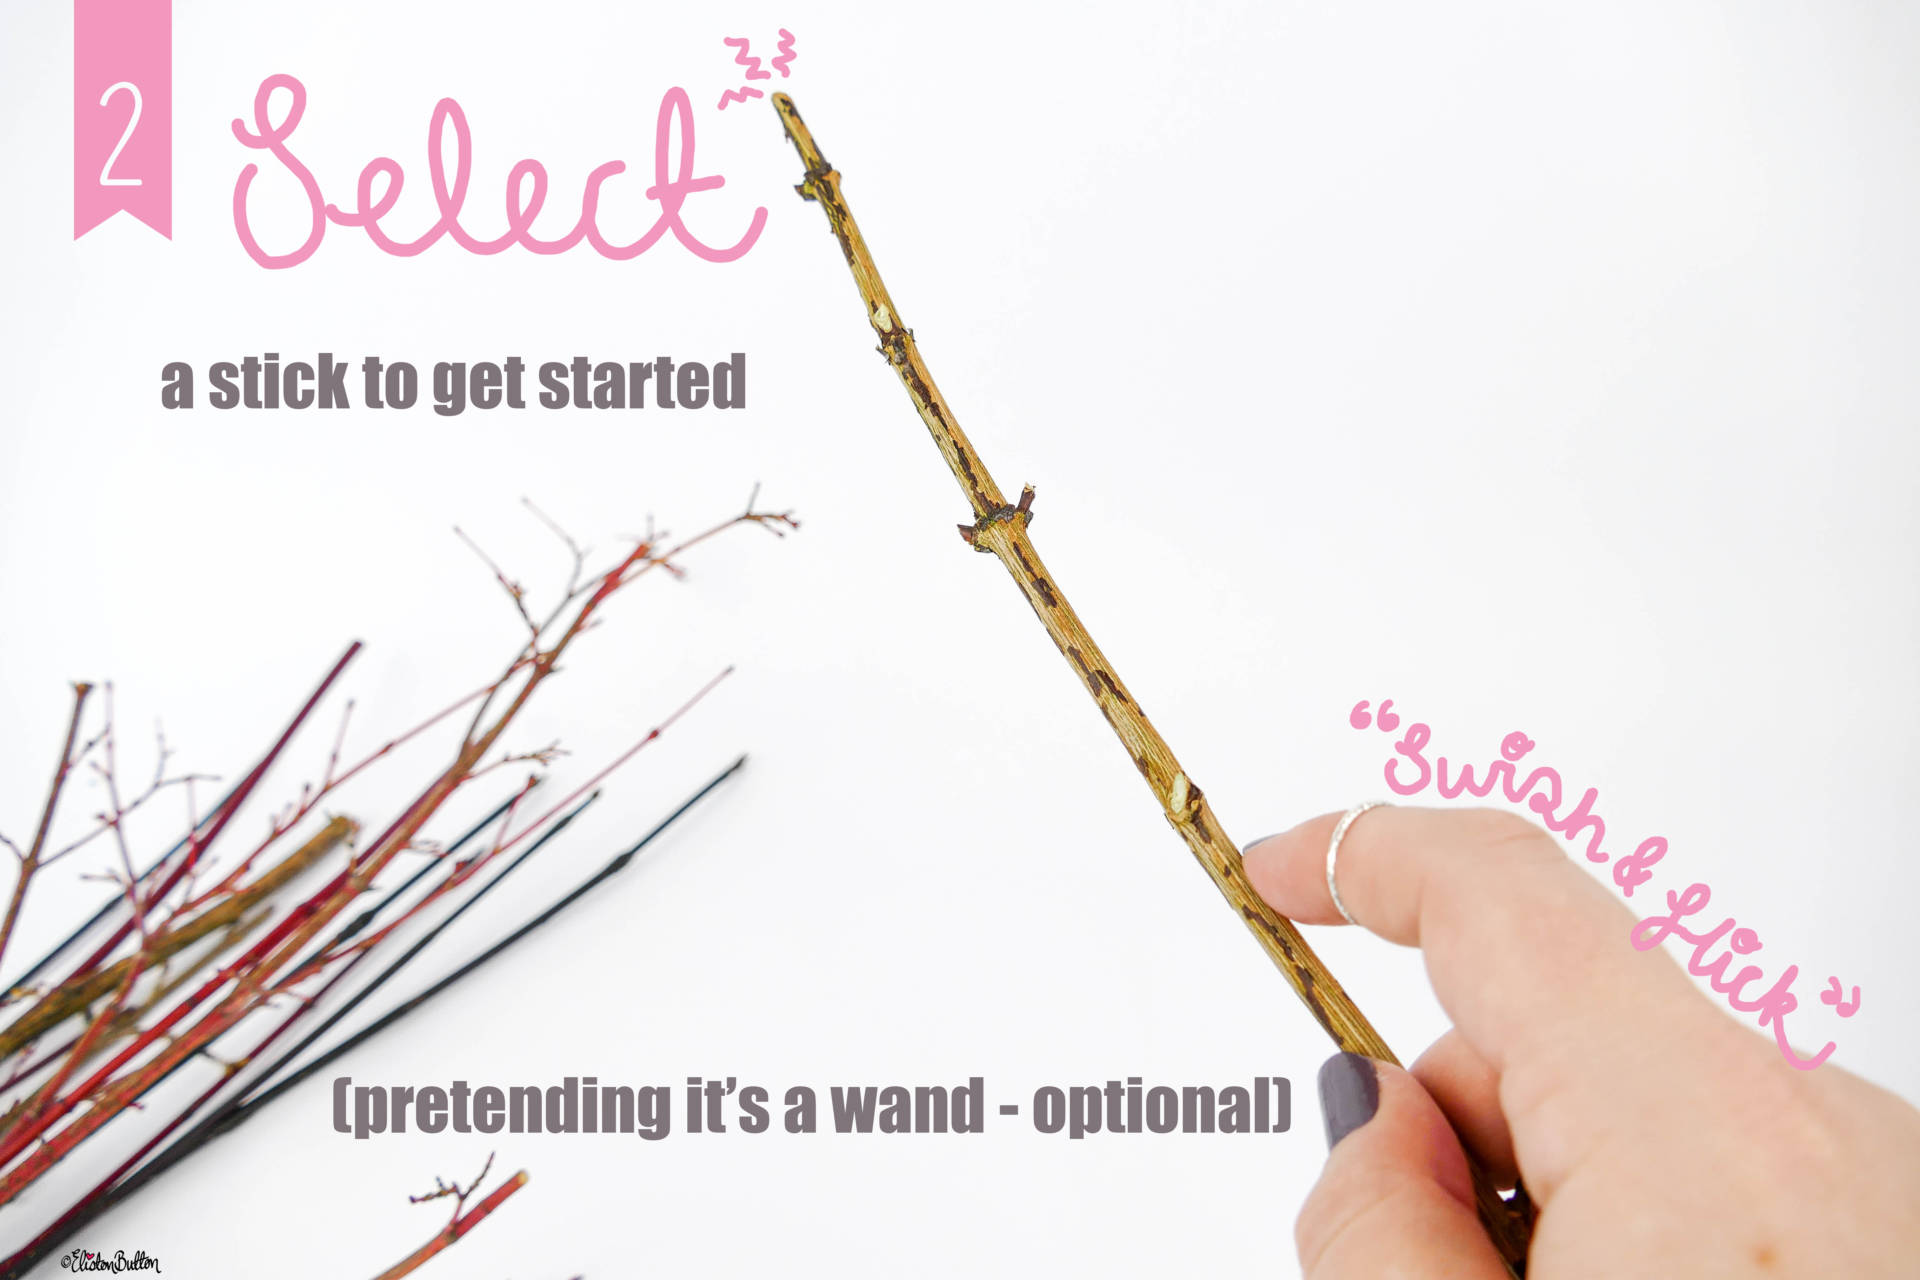 Swish and Flick - Pretending it's a Wand Optional! - Tutorial Tuesday - Simple Autumn Pom Pom Decor at www.elistonbutton.com - Eliston Button - That Crafty Kid – Art, Design, Craft & Adventure.